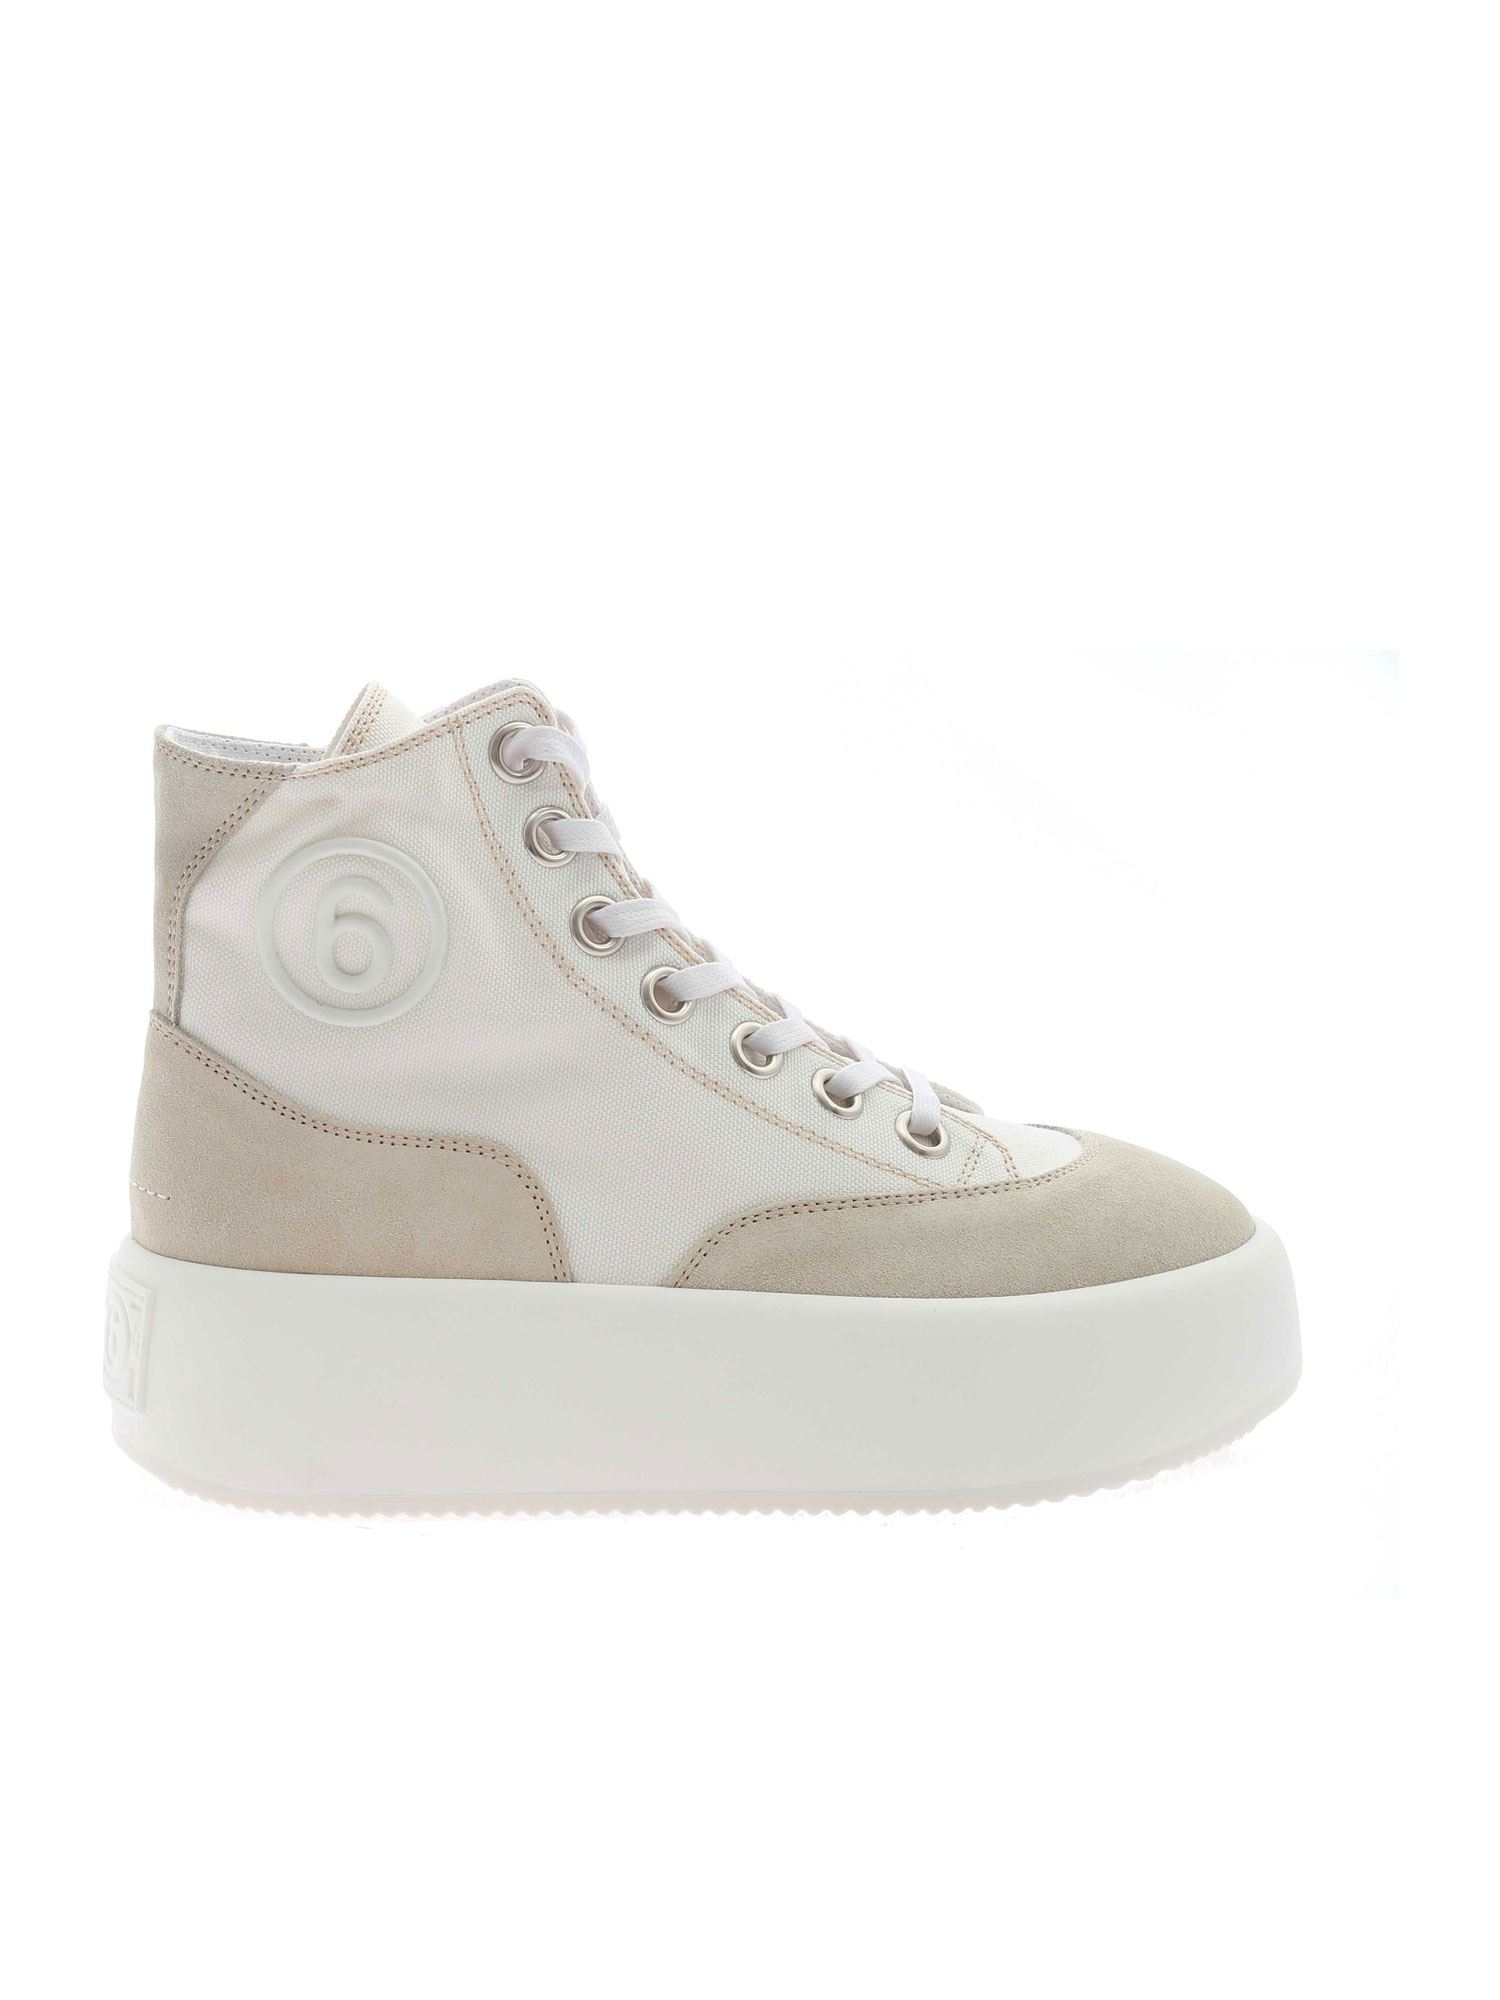 Mm6 Maison Margiela CANVAS AND SUEDE SNEAKERS IN IVORY